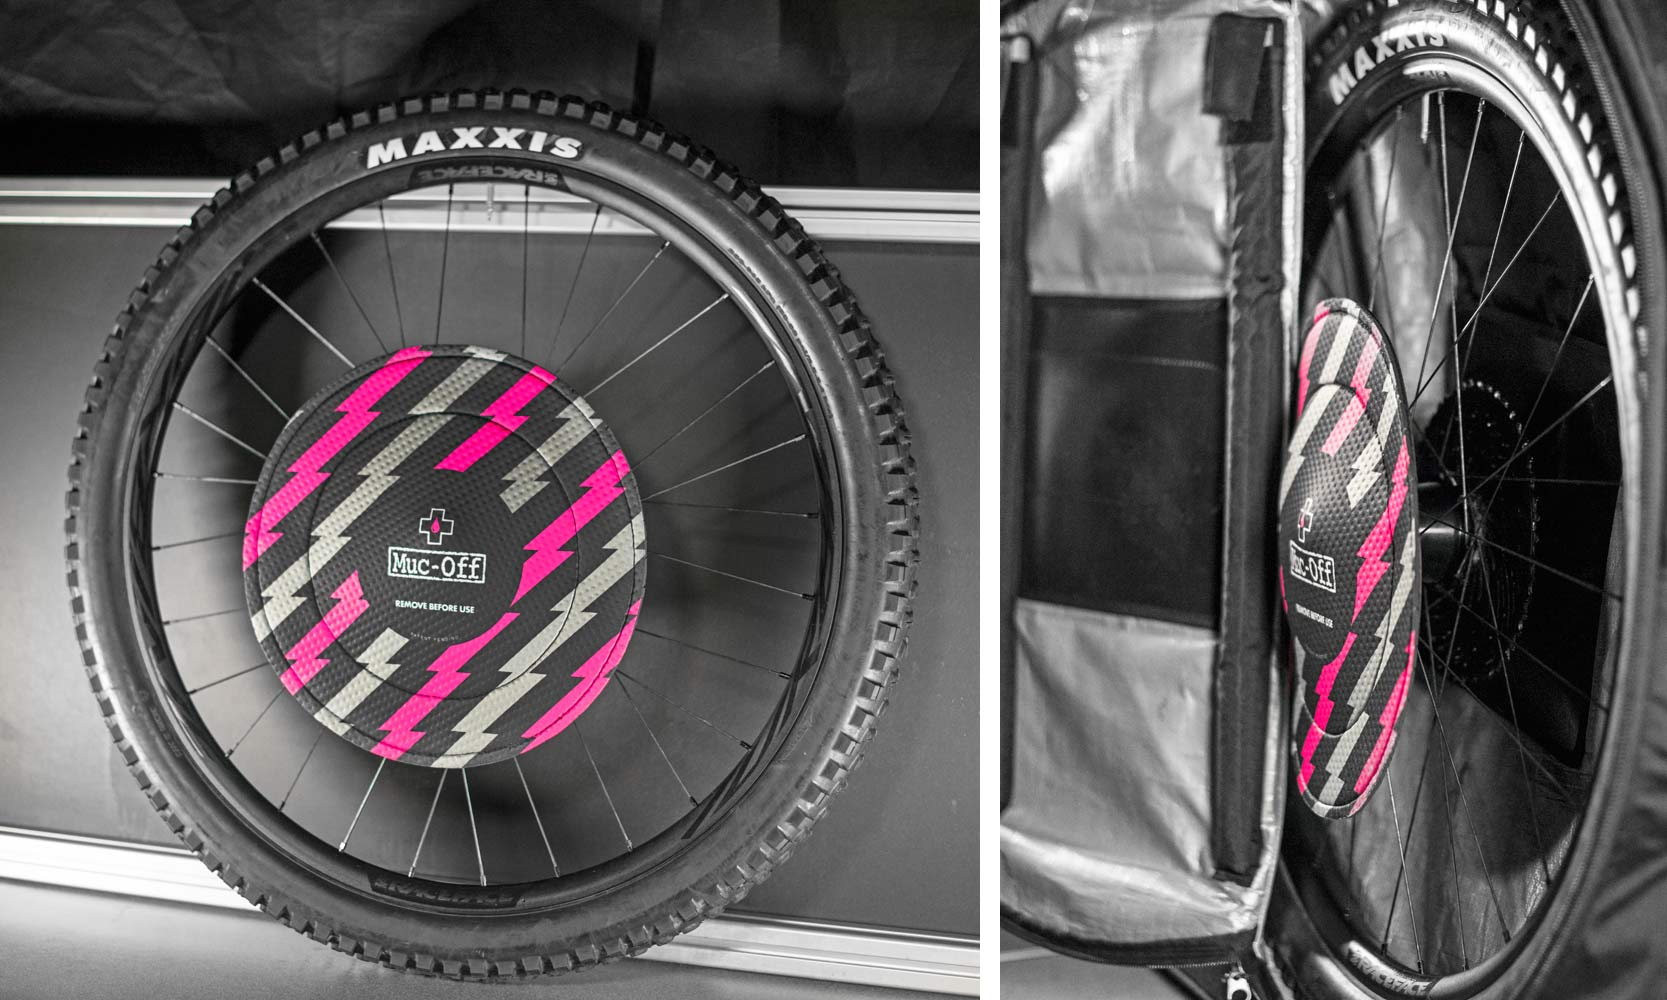 Muc-Off neoprene Disc Brake Covers for cleaning & transport